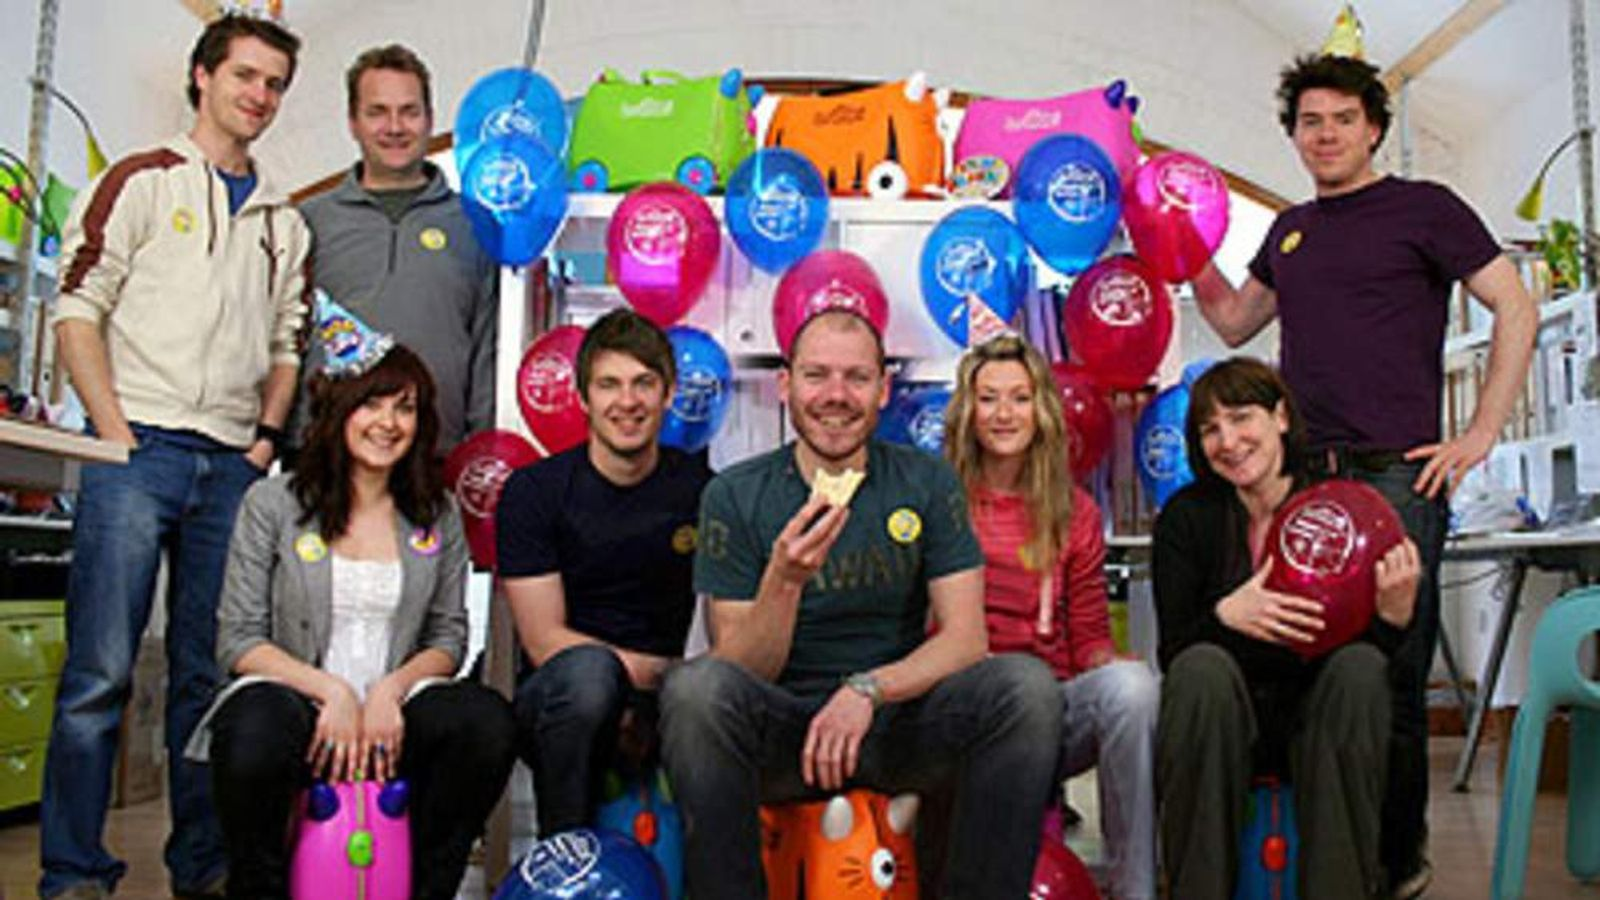 Rob Law and the Trunki team